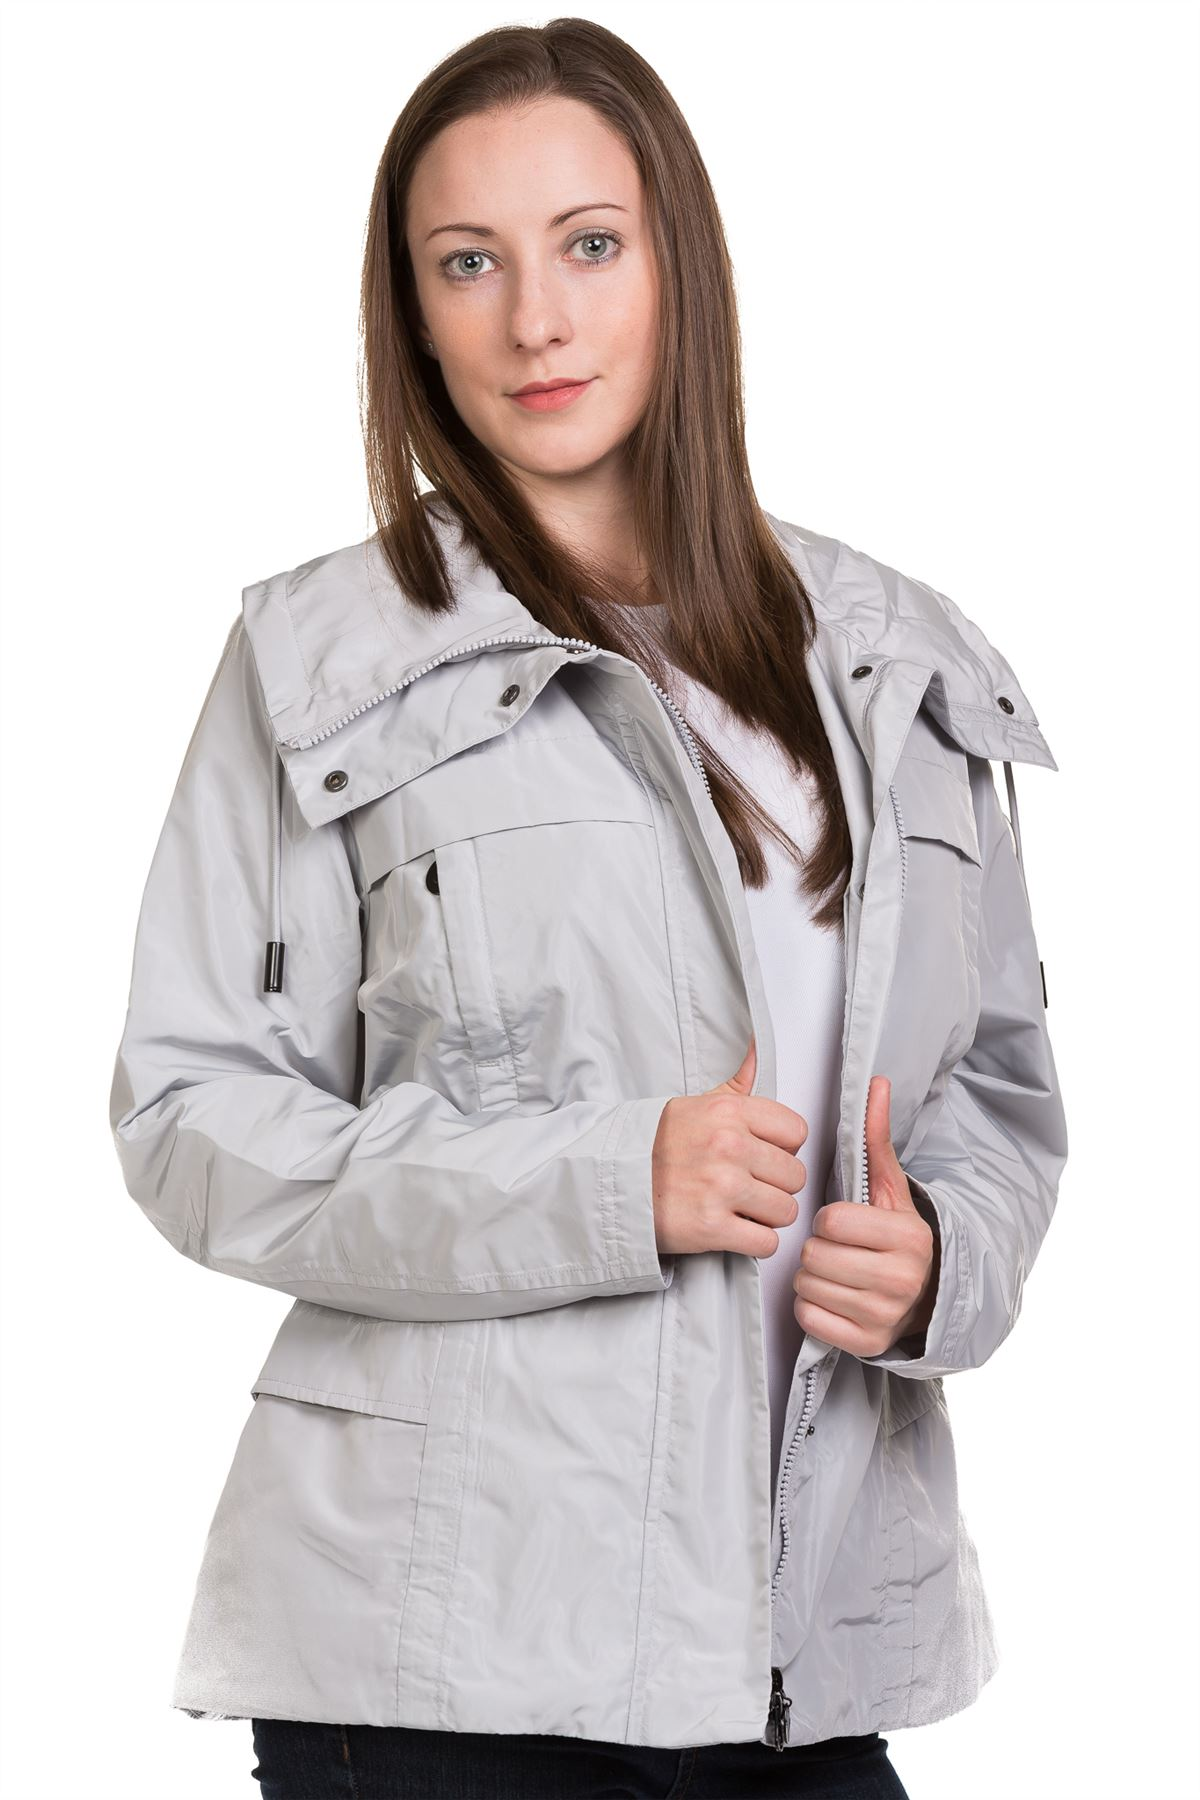 New-Ladies-casual-Jacket-Plain-Lining-Lightweight-Quality-outwear-Coat-8-16 thumbnail 11